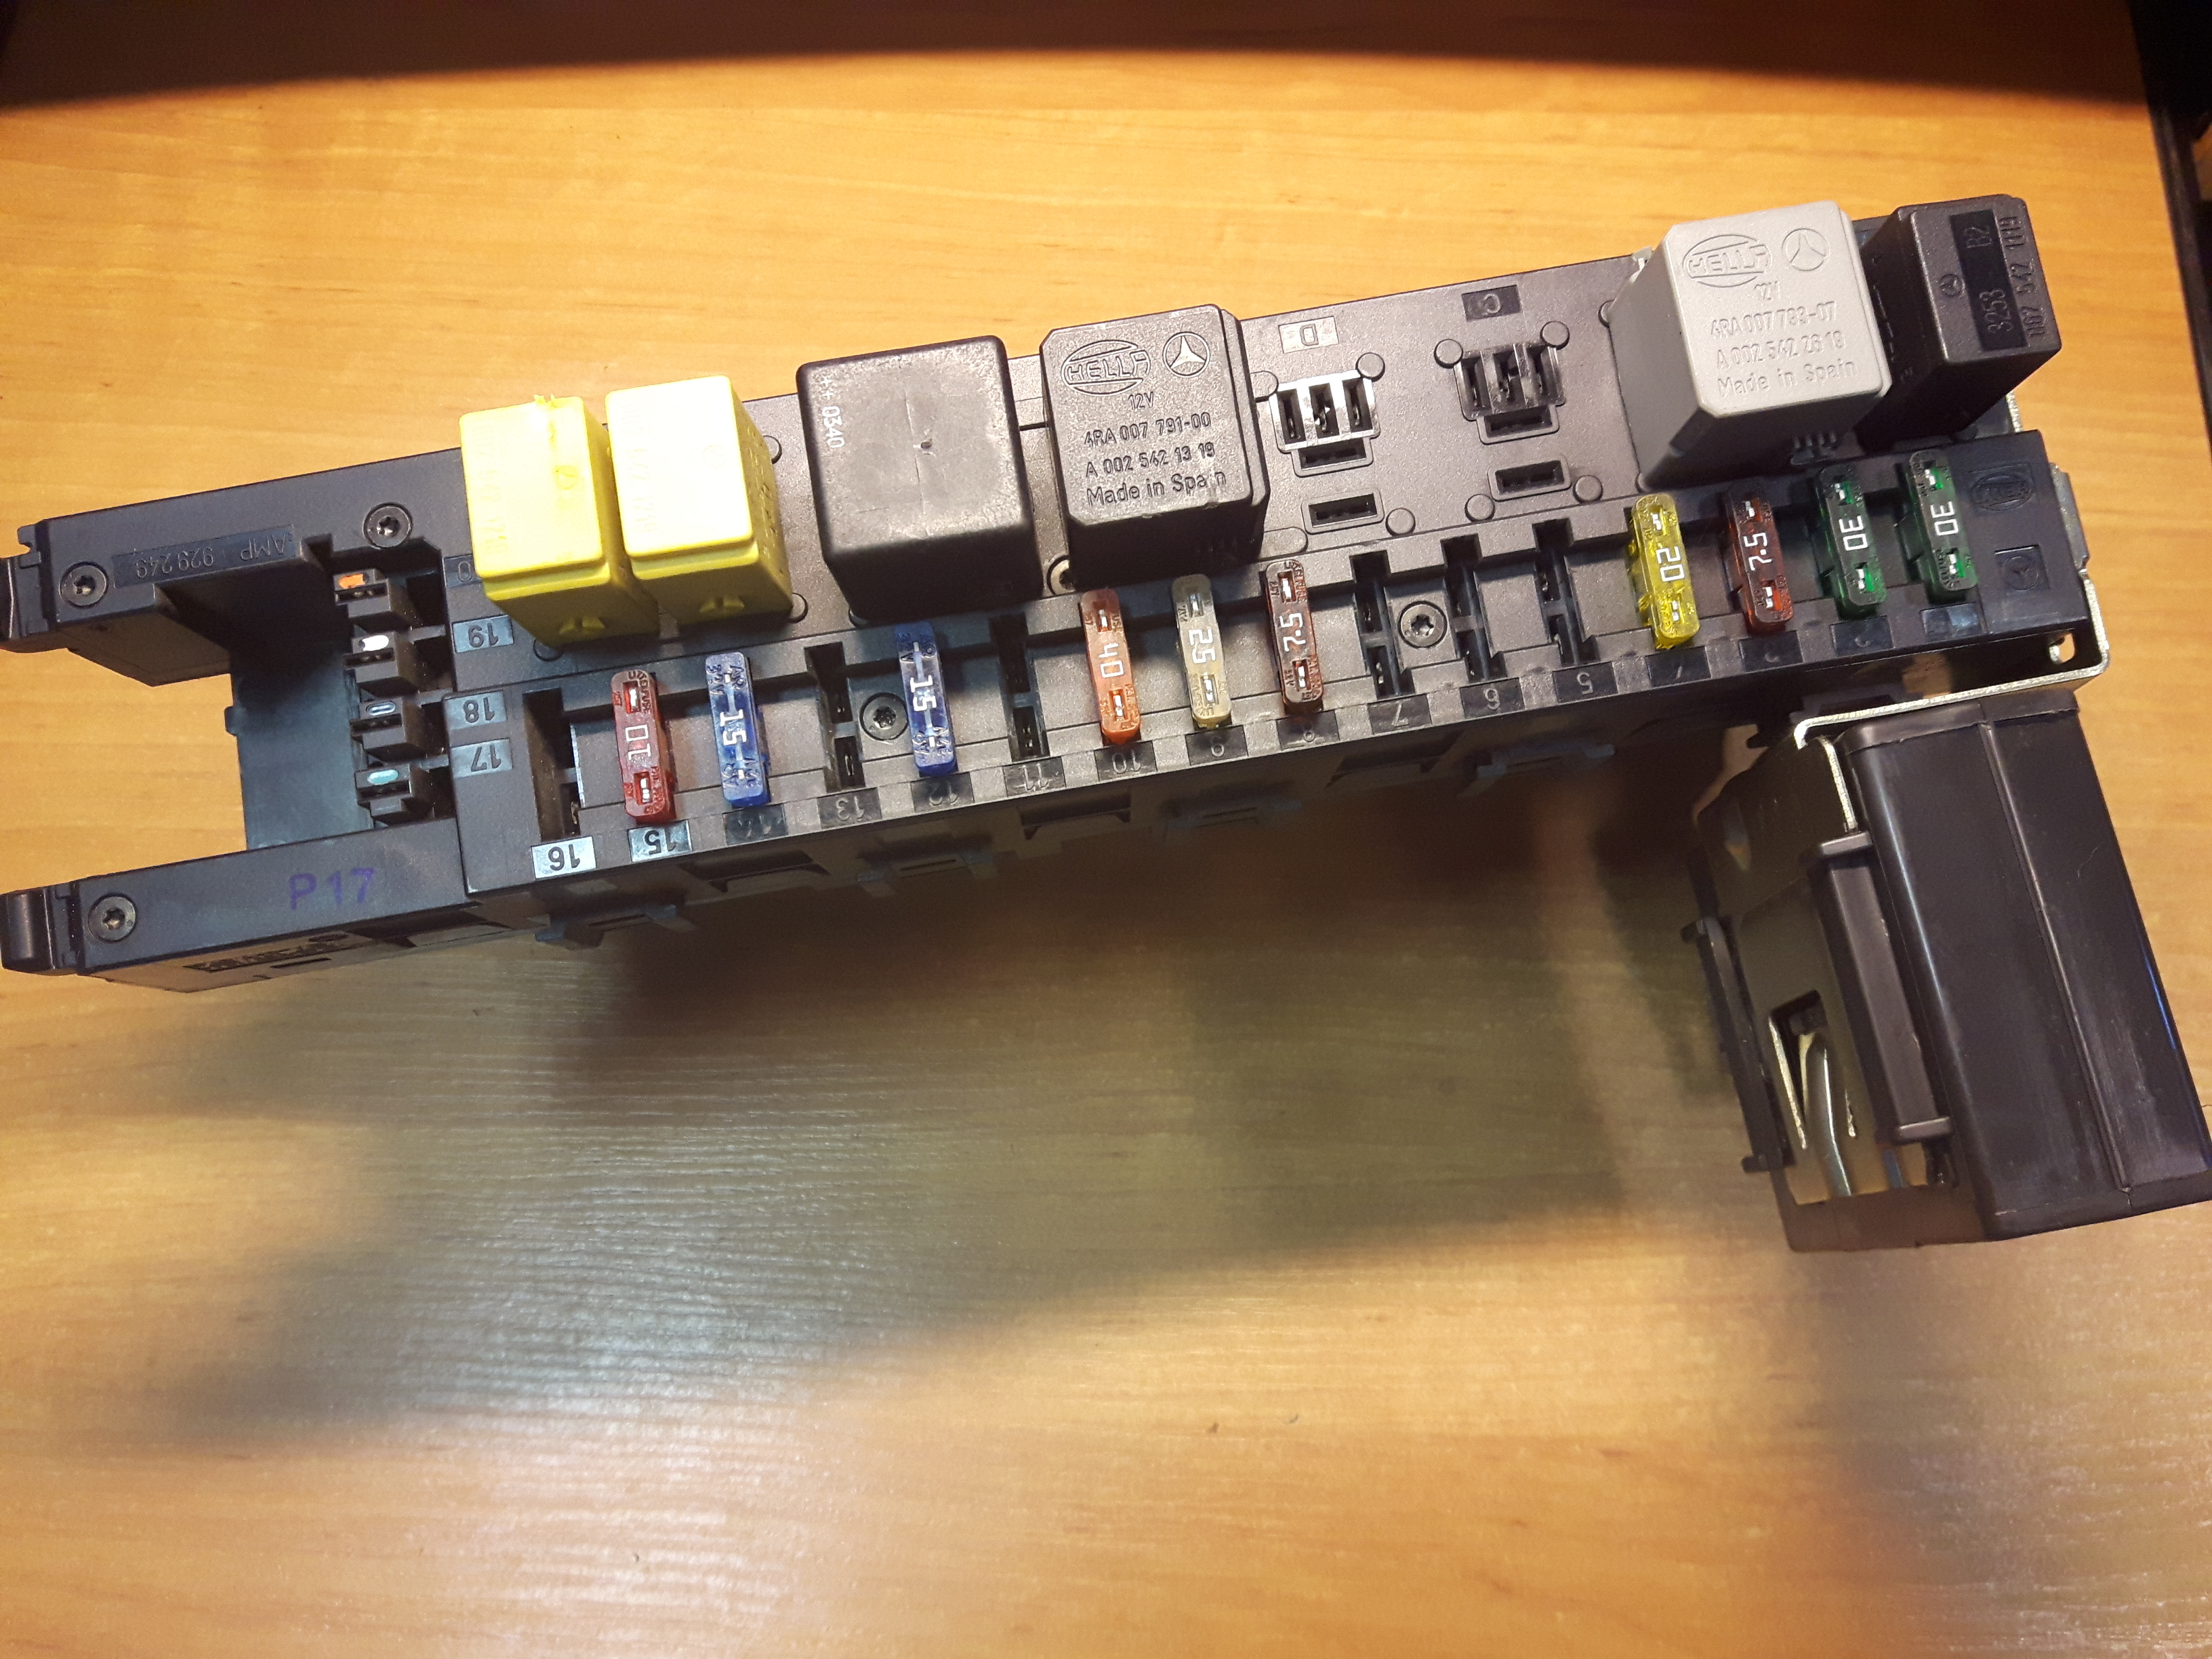 Mercedes W203 Fuse Box Wiring Library Toyota Corolla Nze C200 20 Cdi Turbo Diesel 2095450701 Price